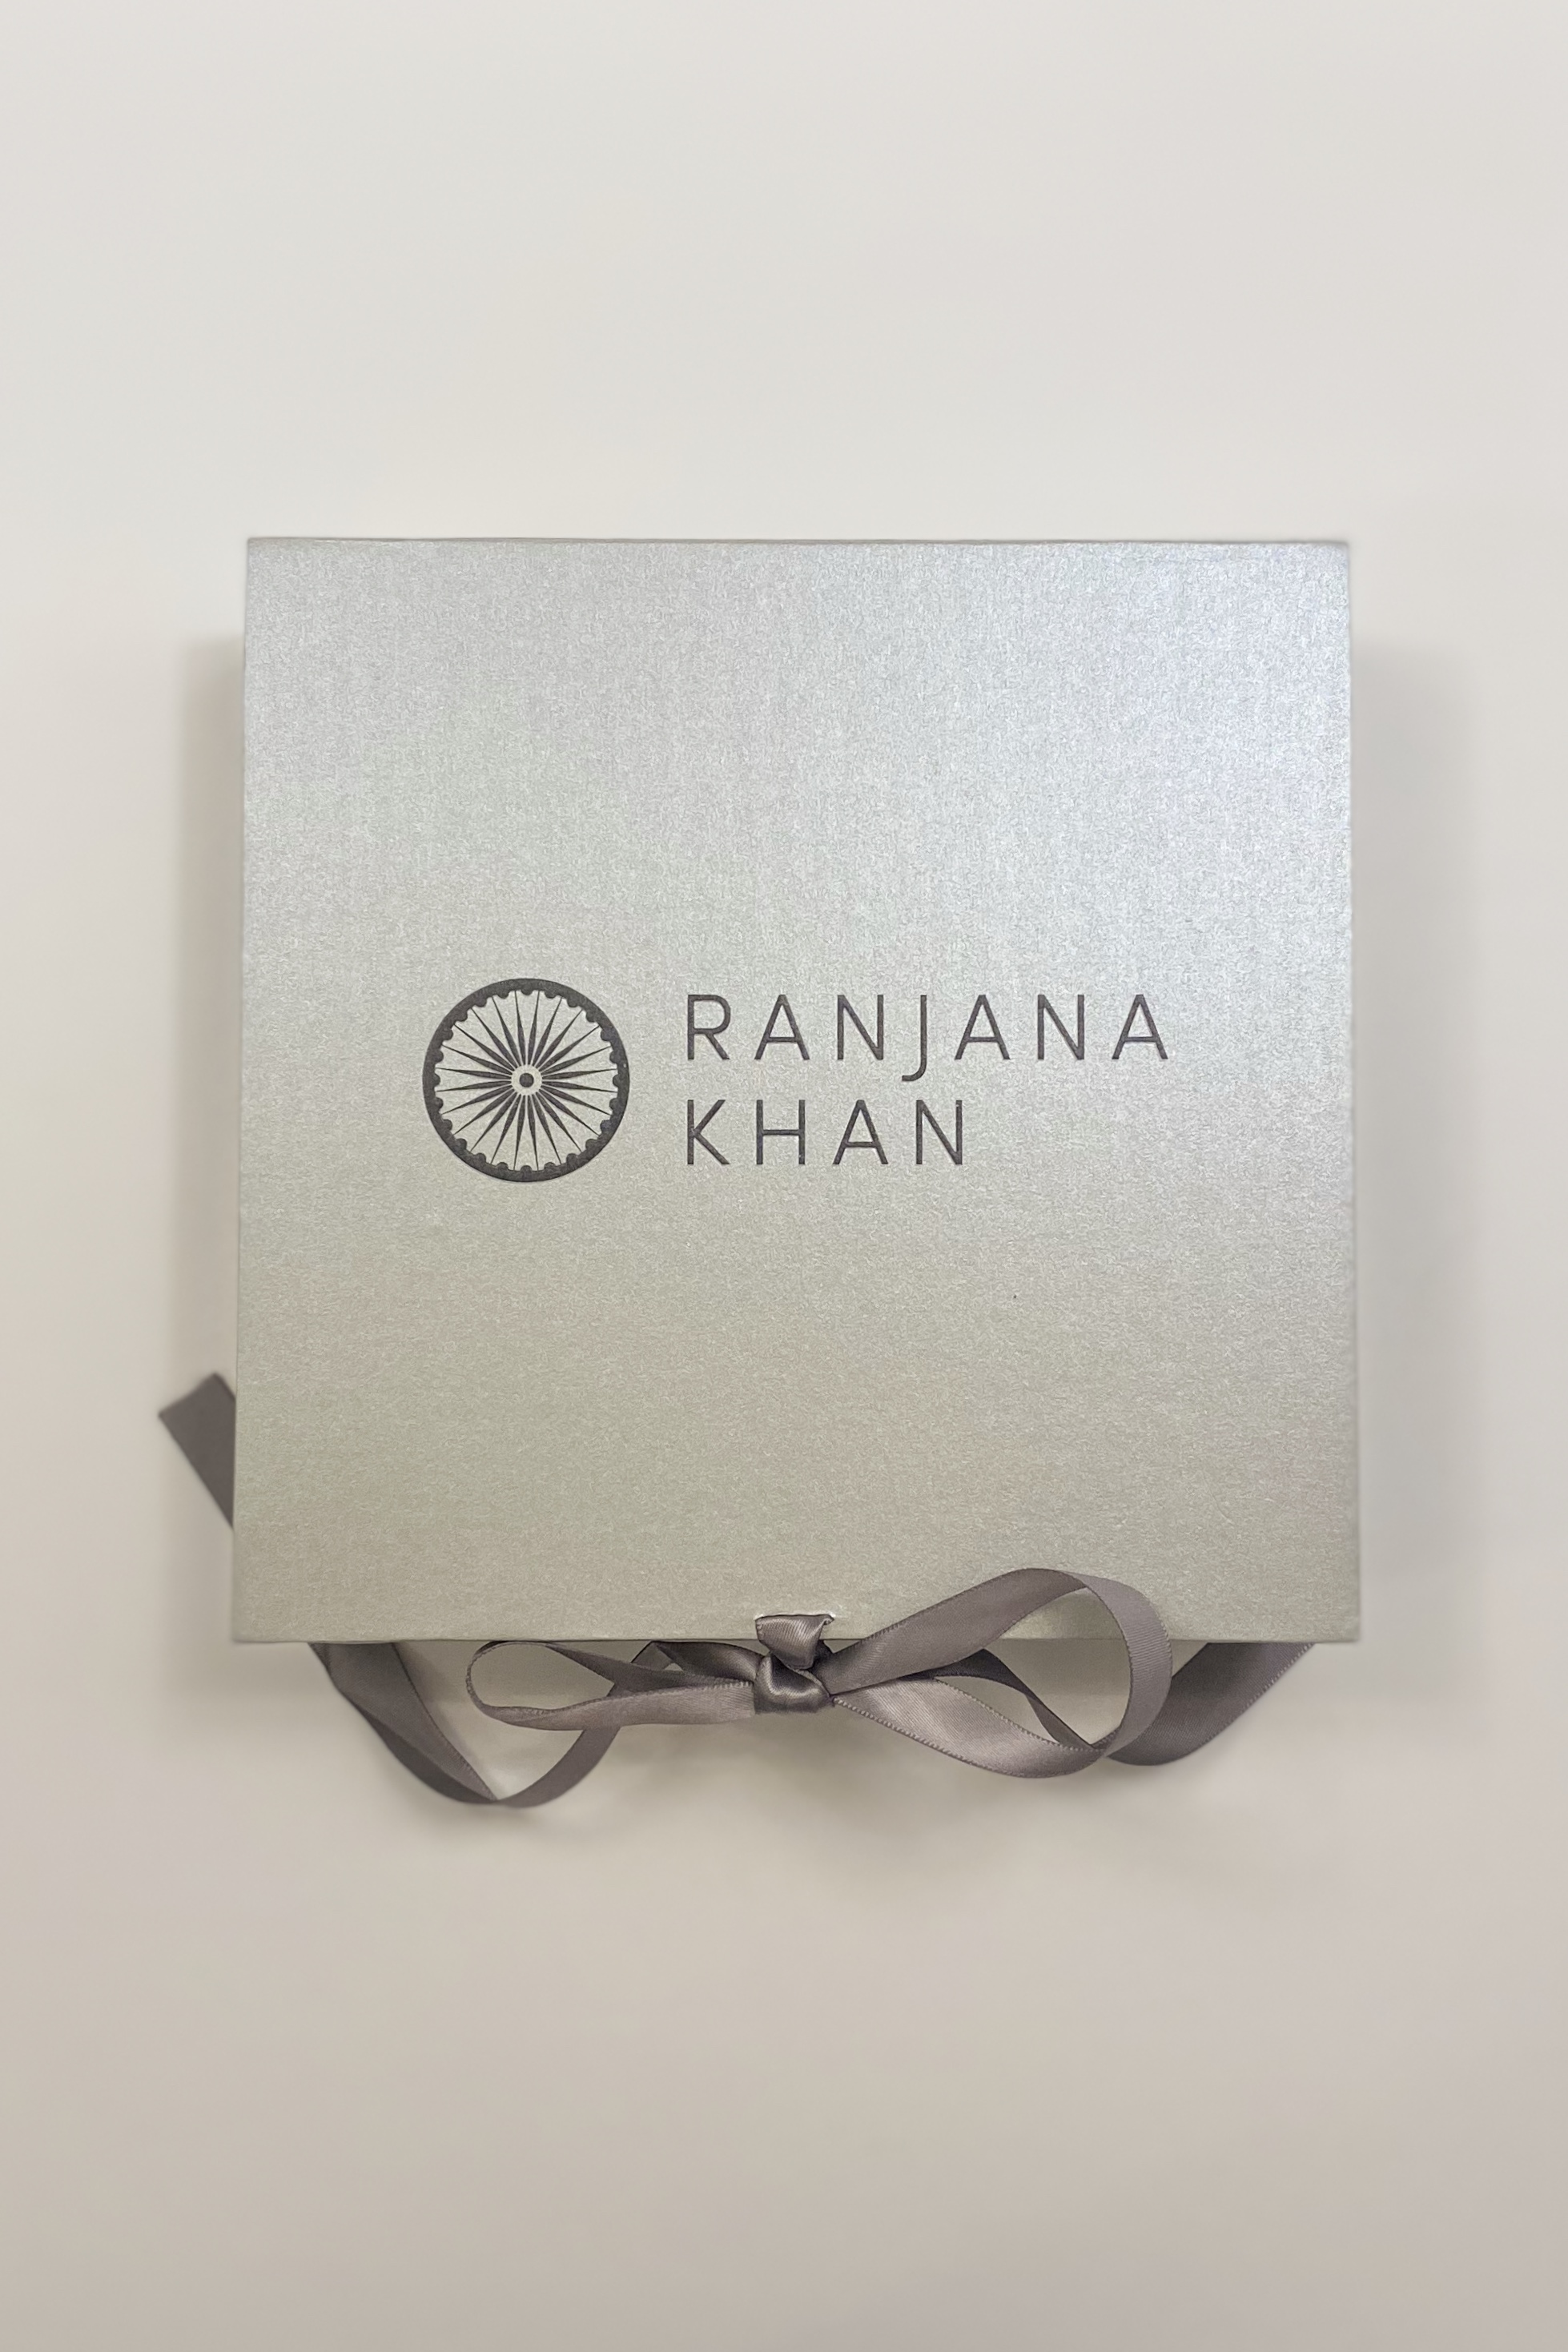 [即配送][SELL]Ranjana Khan[専用BOX]